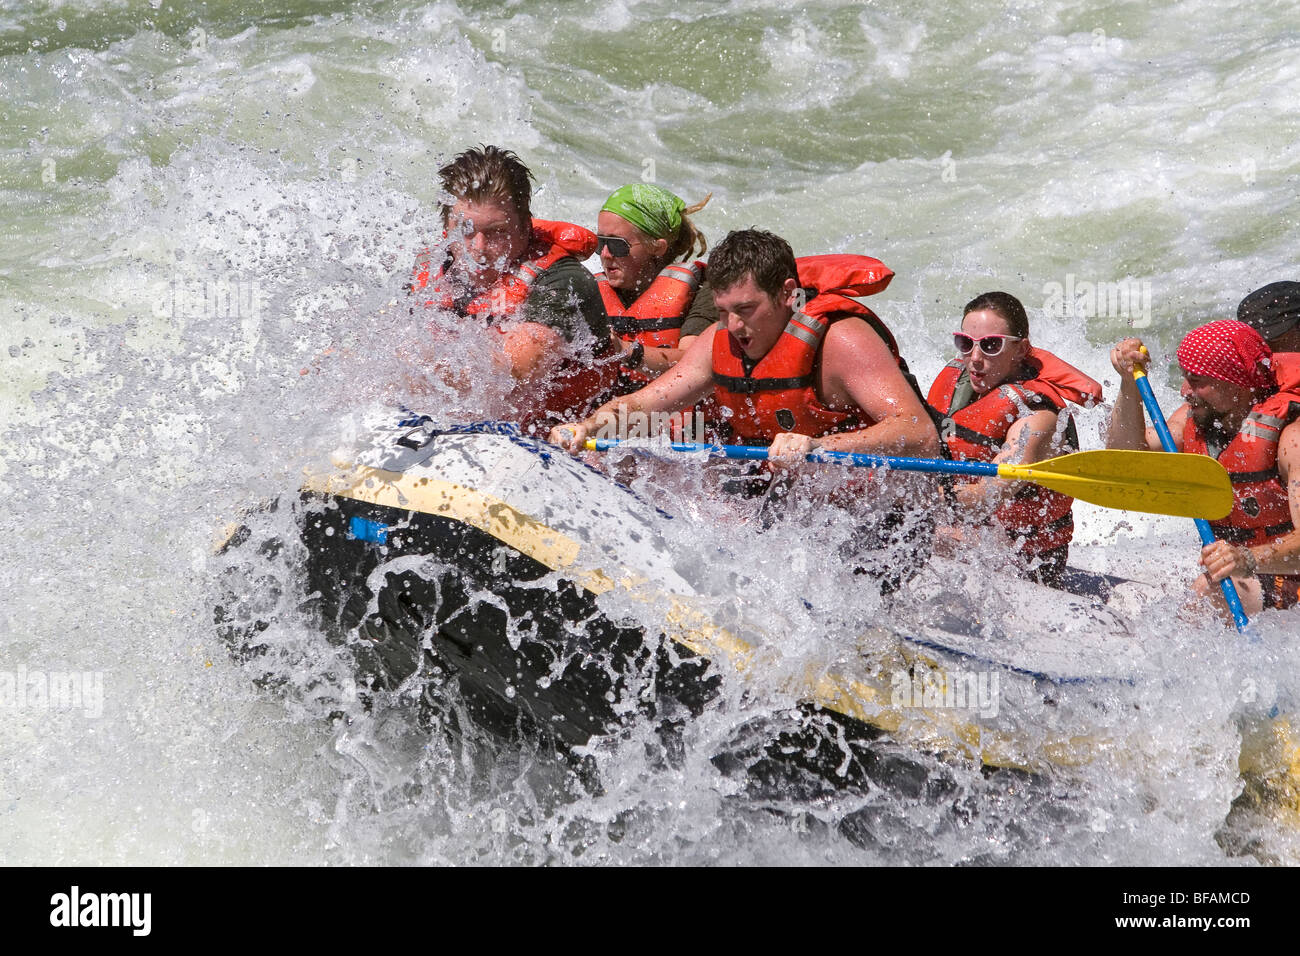 Whitewater rafting the main Payette River in southwestern Idaho, USA. - Stock Image